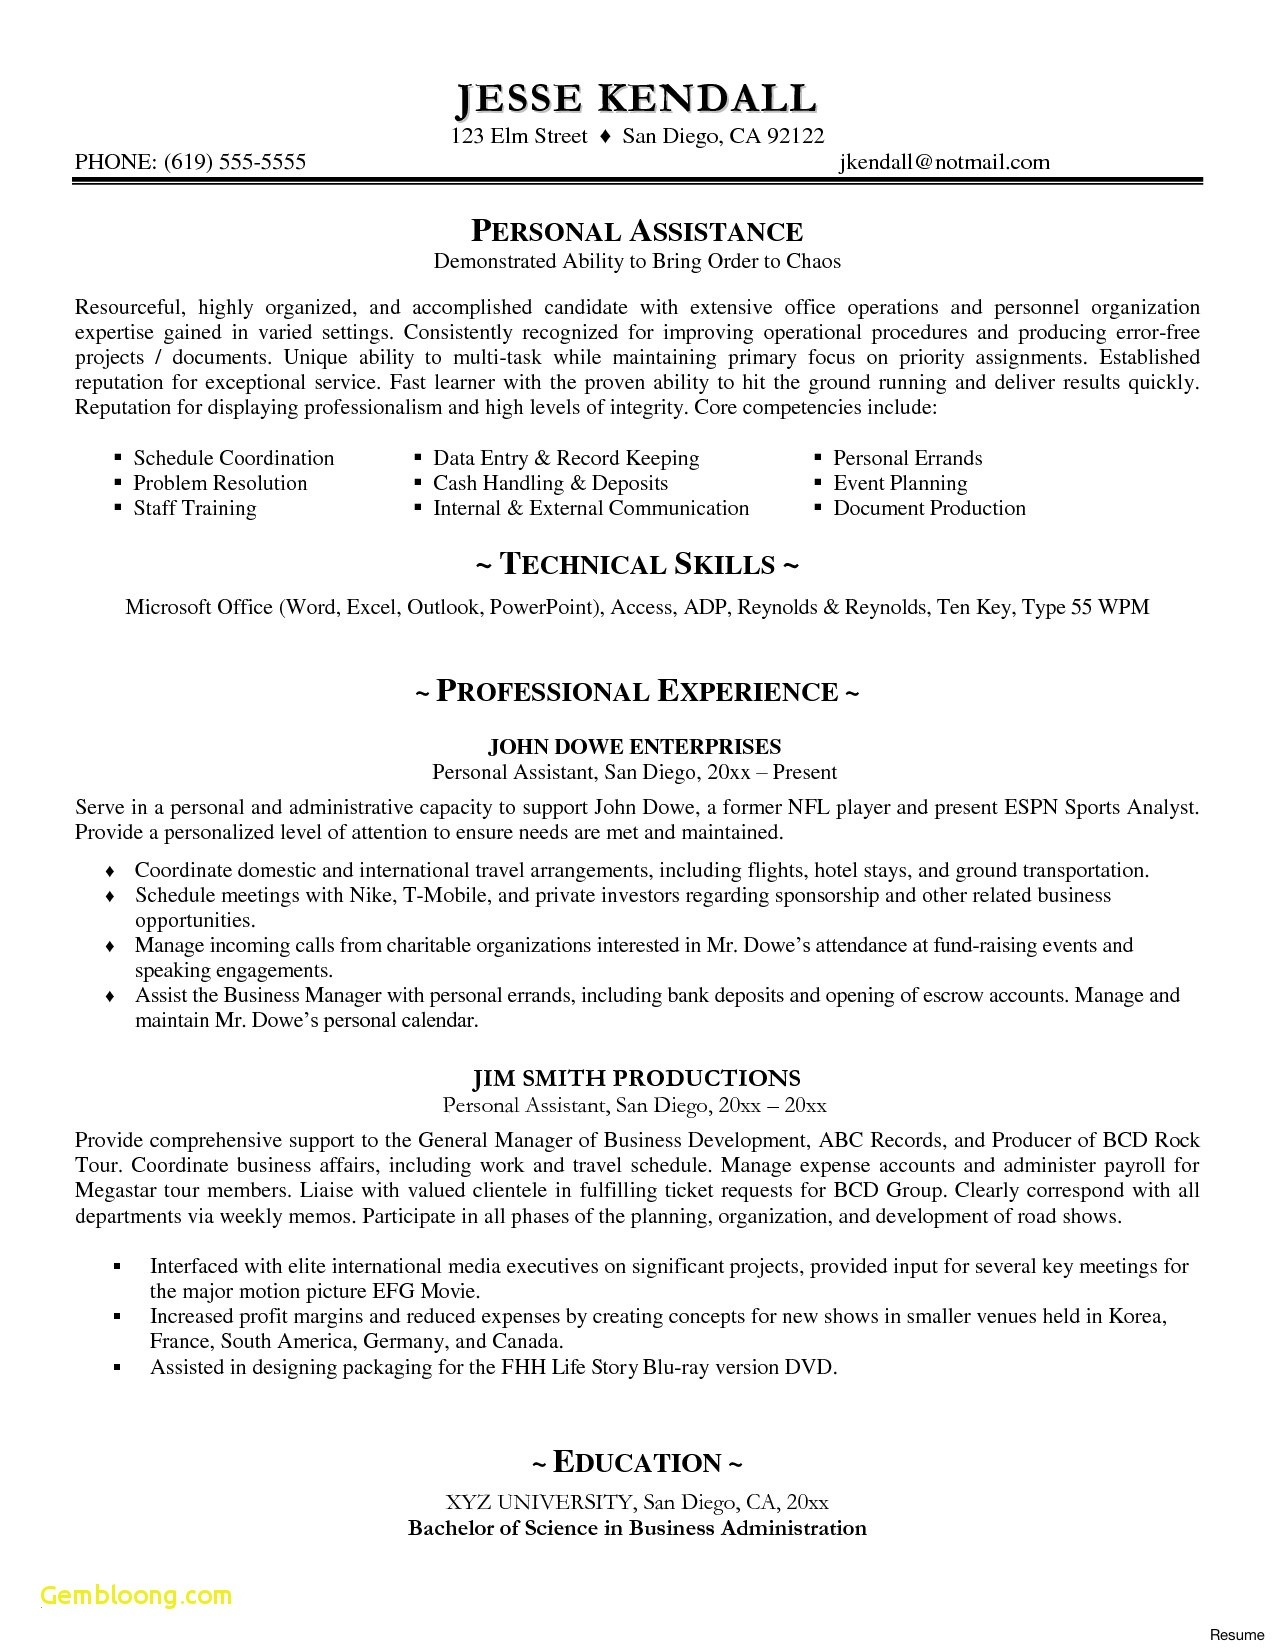 Data Science Resume Template - Personal assistant Resume Sample New Resume Samples Doc New